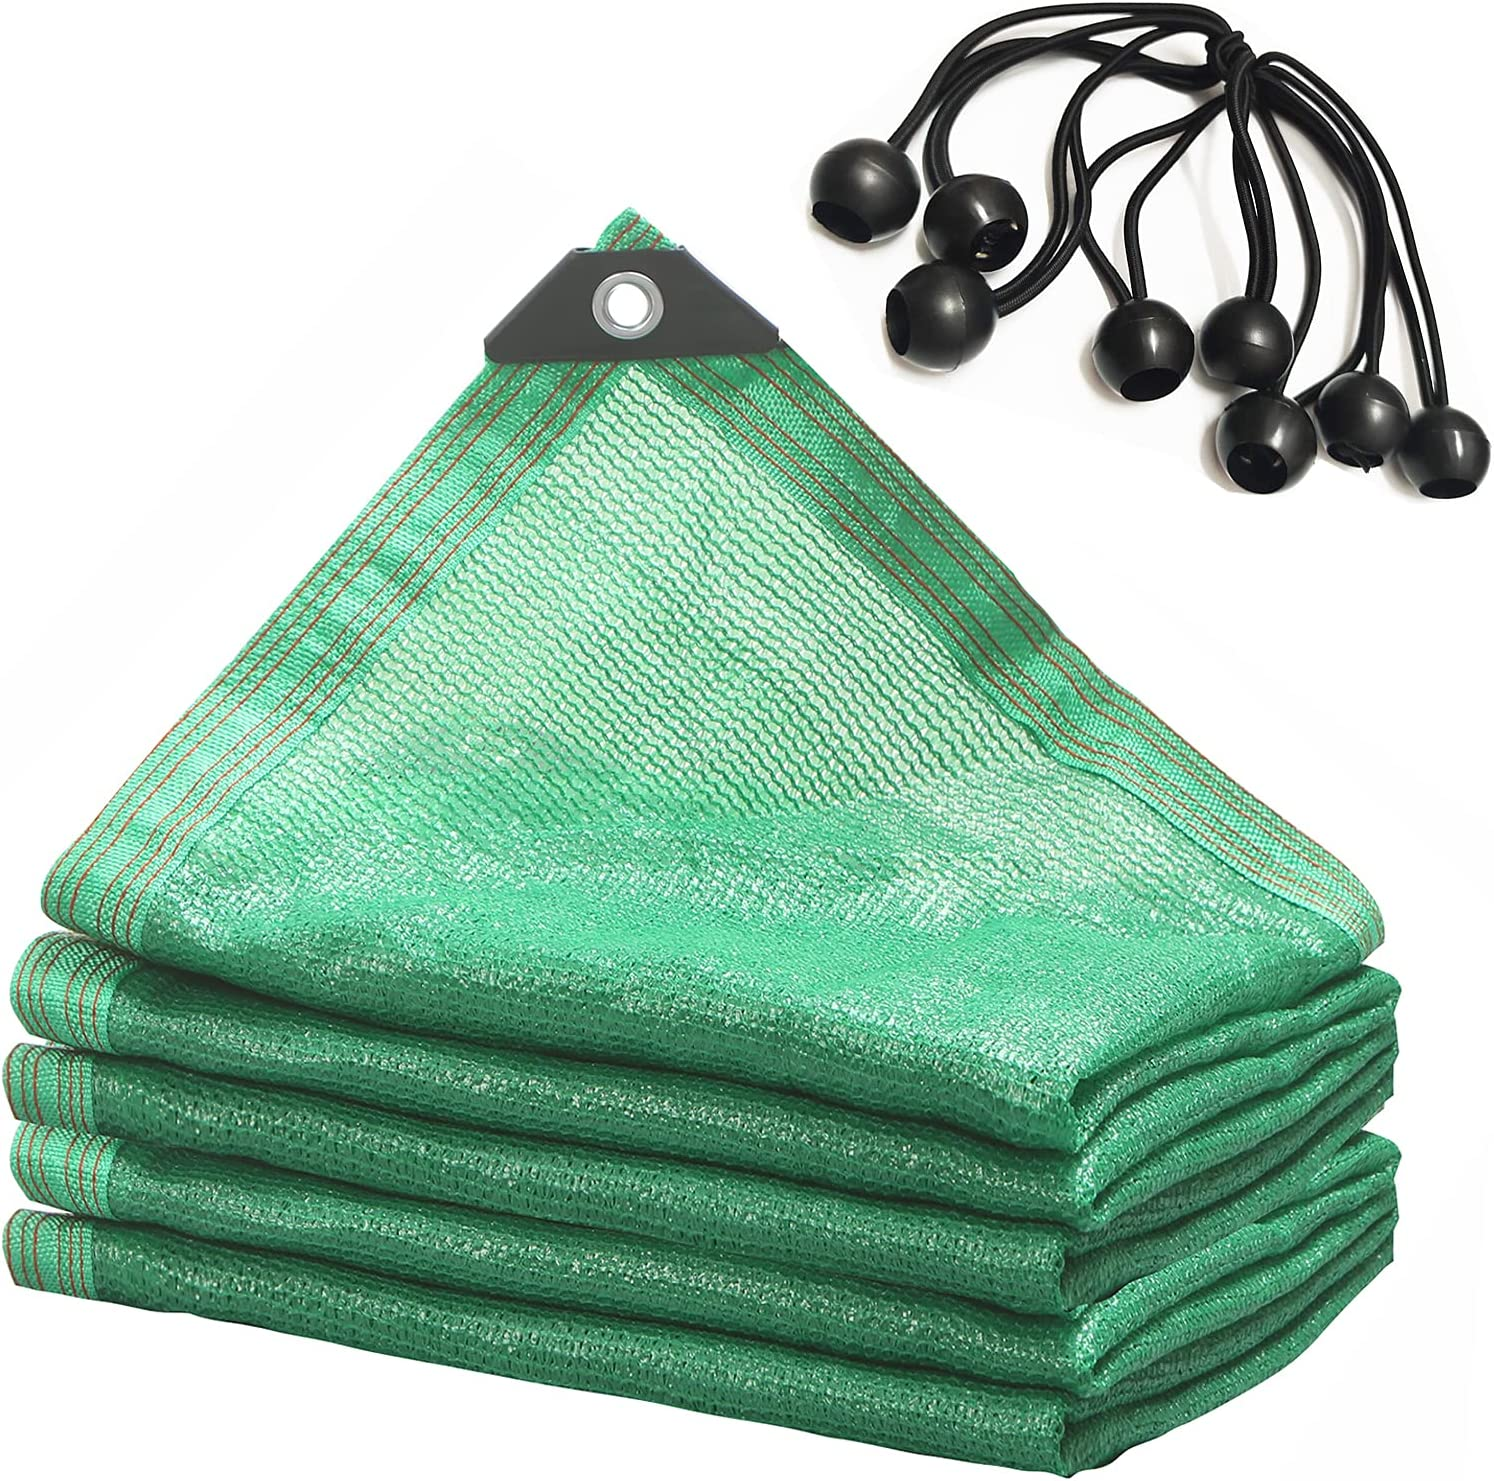 None/Brand Sunblock Shade Cloth Greenhouse Covers Fabric Mesh Tarp 70% UV Resistant Green Net Shading for Garden Plants Patio Lawn Flowers Outdoor Sunshade Sunscreen,with Grommets 6.5'x6.5'-Green